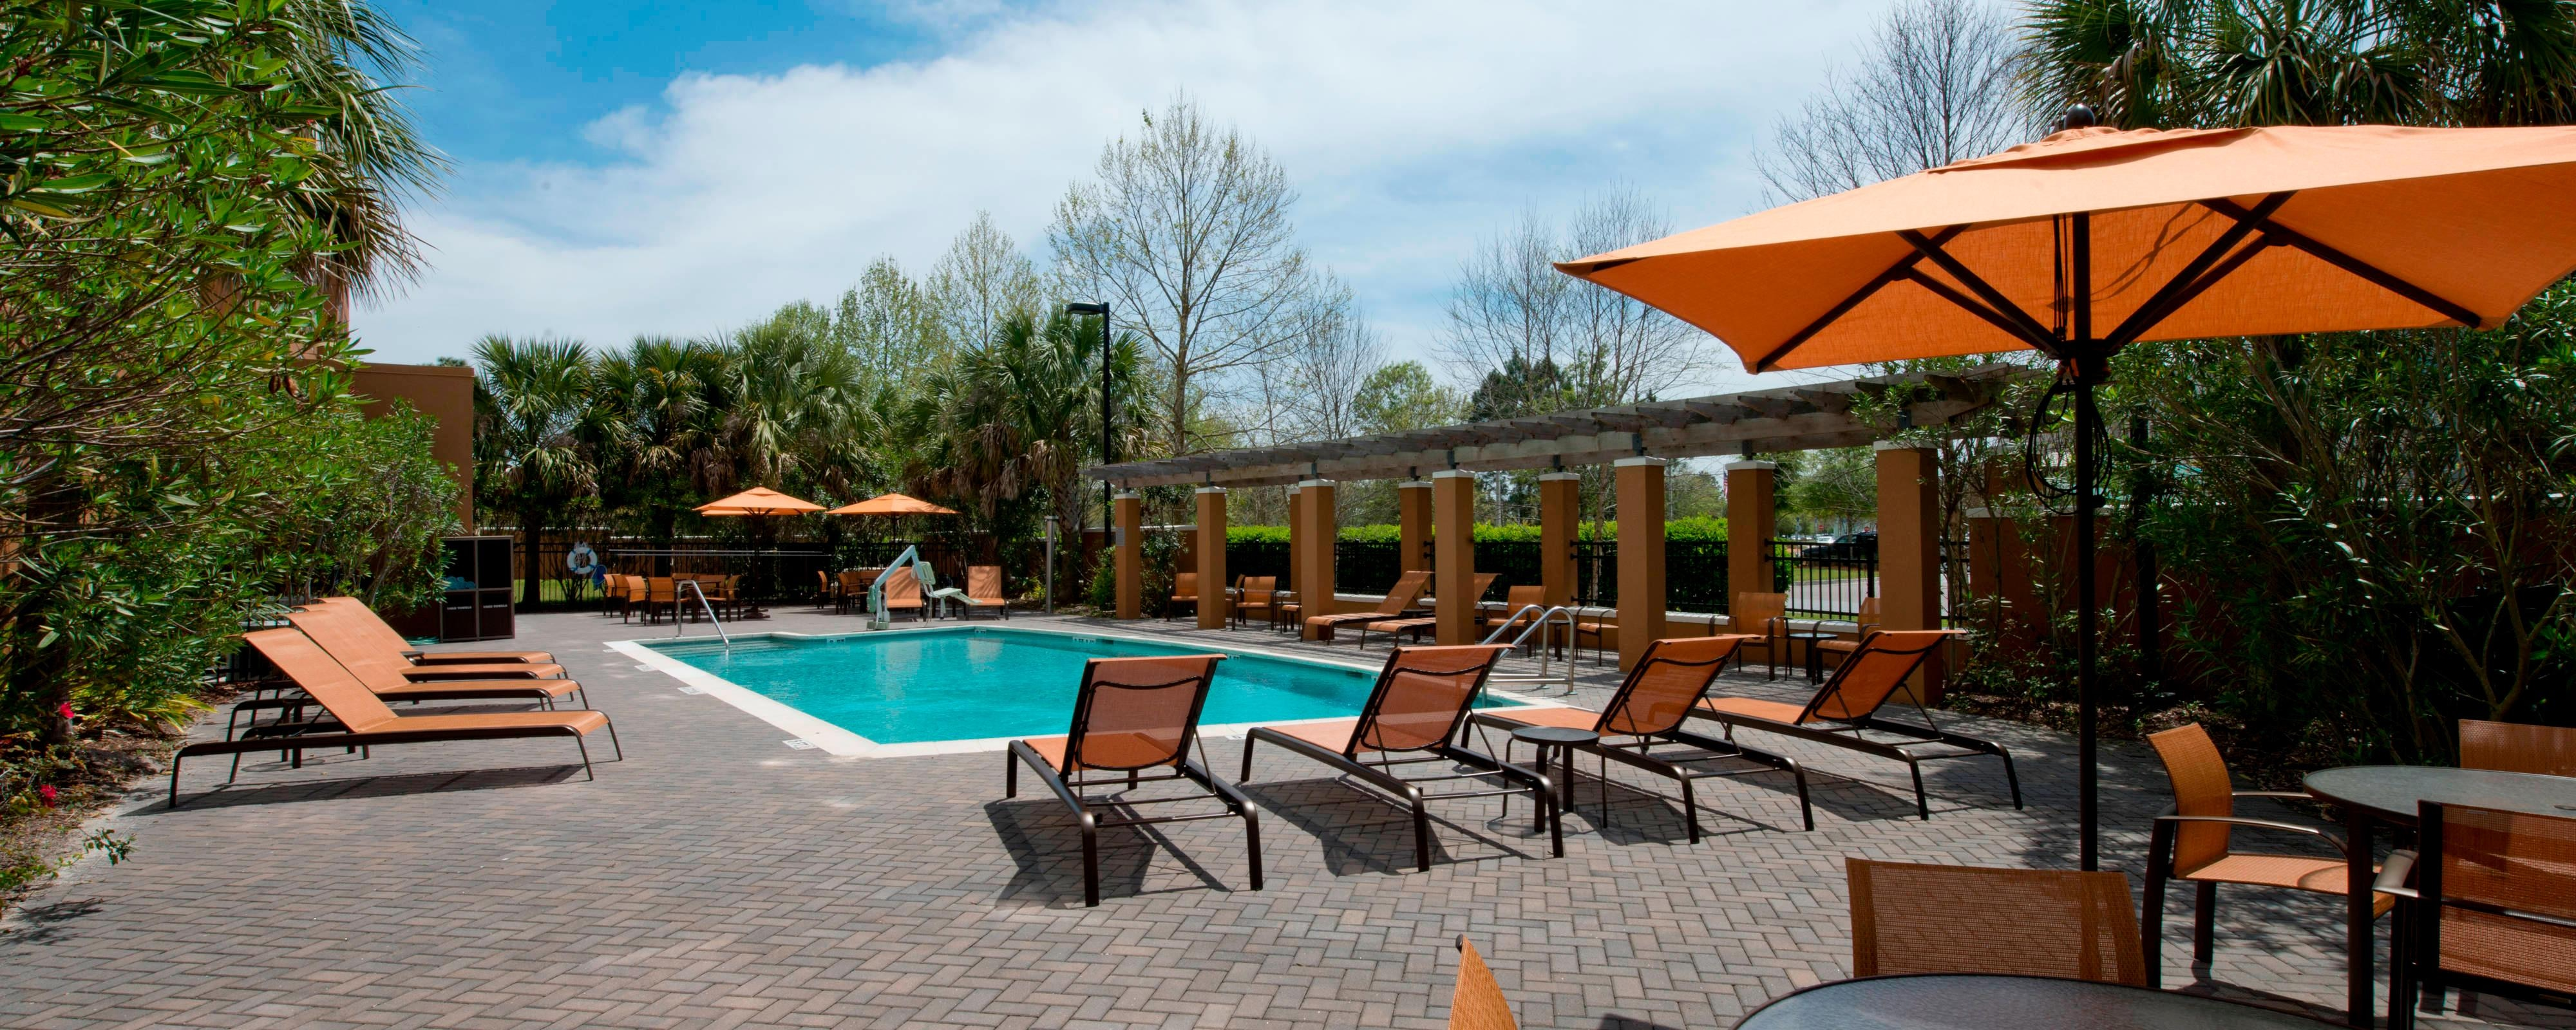 Courtyard by Marriott en Jacksonville, FL